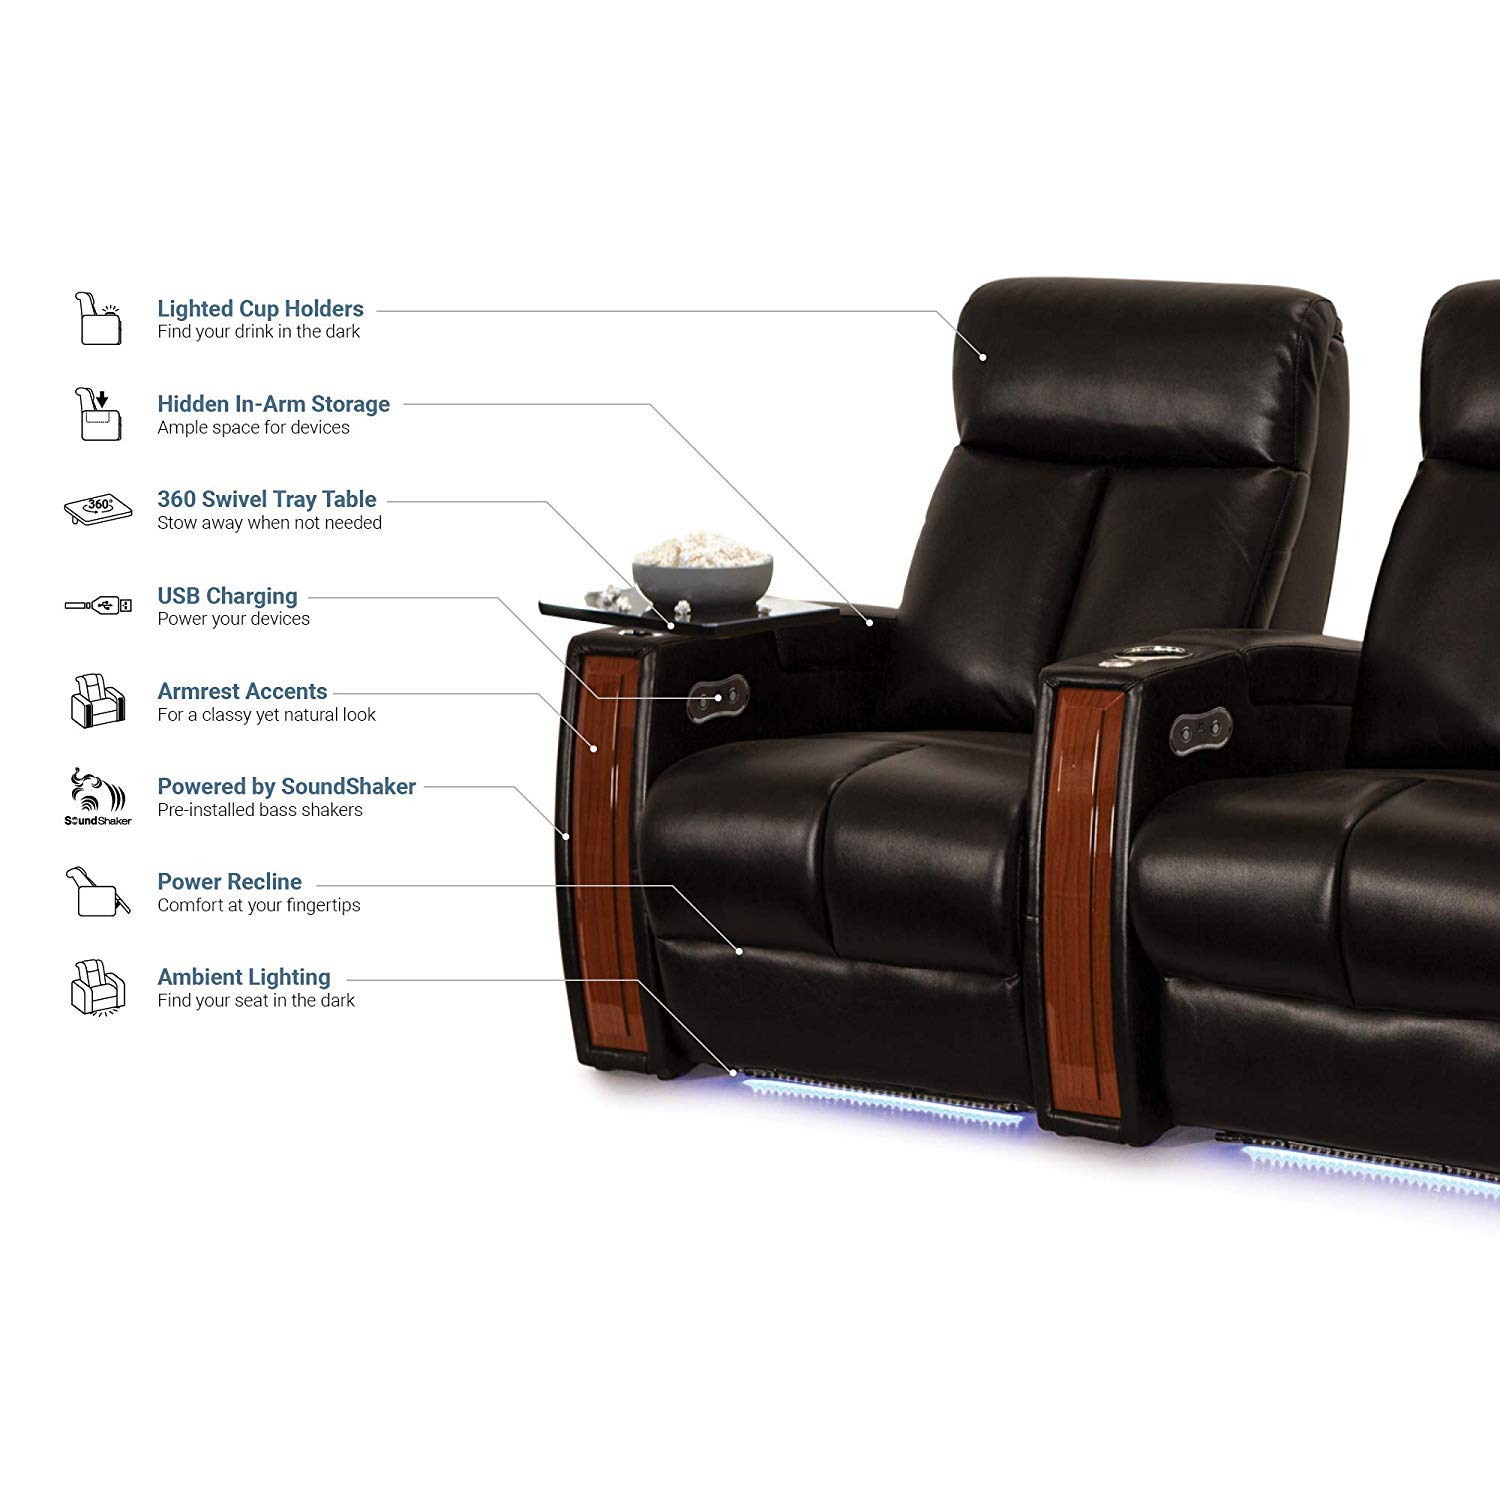 Seatcraft Seville Home Theater Seating Leather Gel Power Recline with Wood Accents, Hidden in-Arm Storage, Swivel Tray Tables, SoundShaker, and Lighted Cup Holders and Base, Row of 4, Black